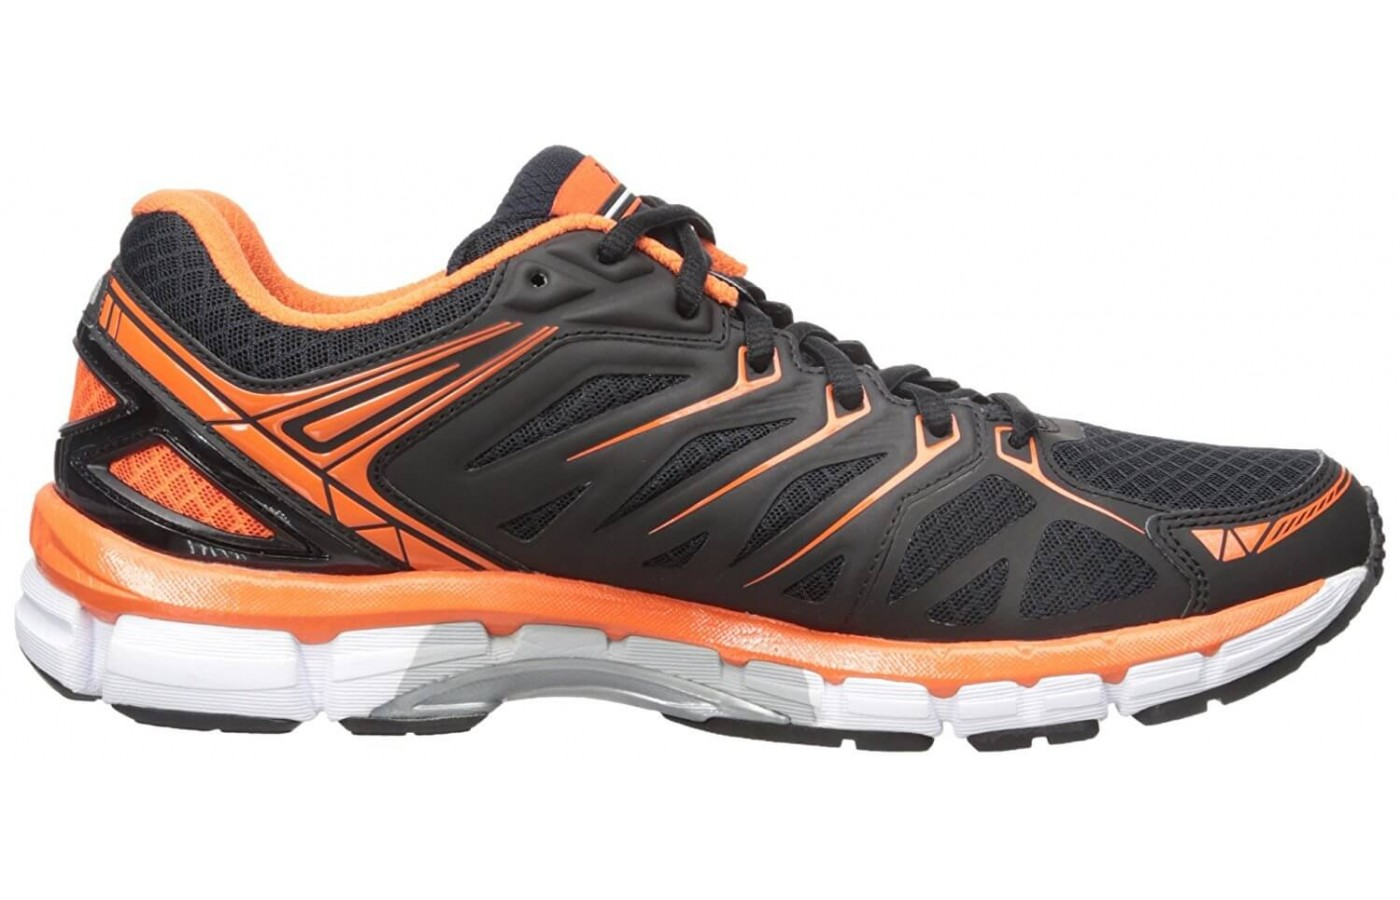 The Sensation features a multilayered midsole that provides cushioning and stability.